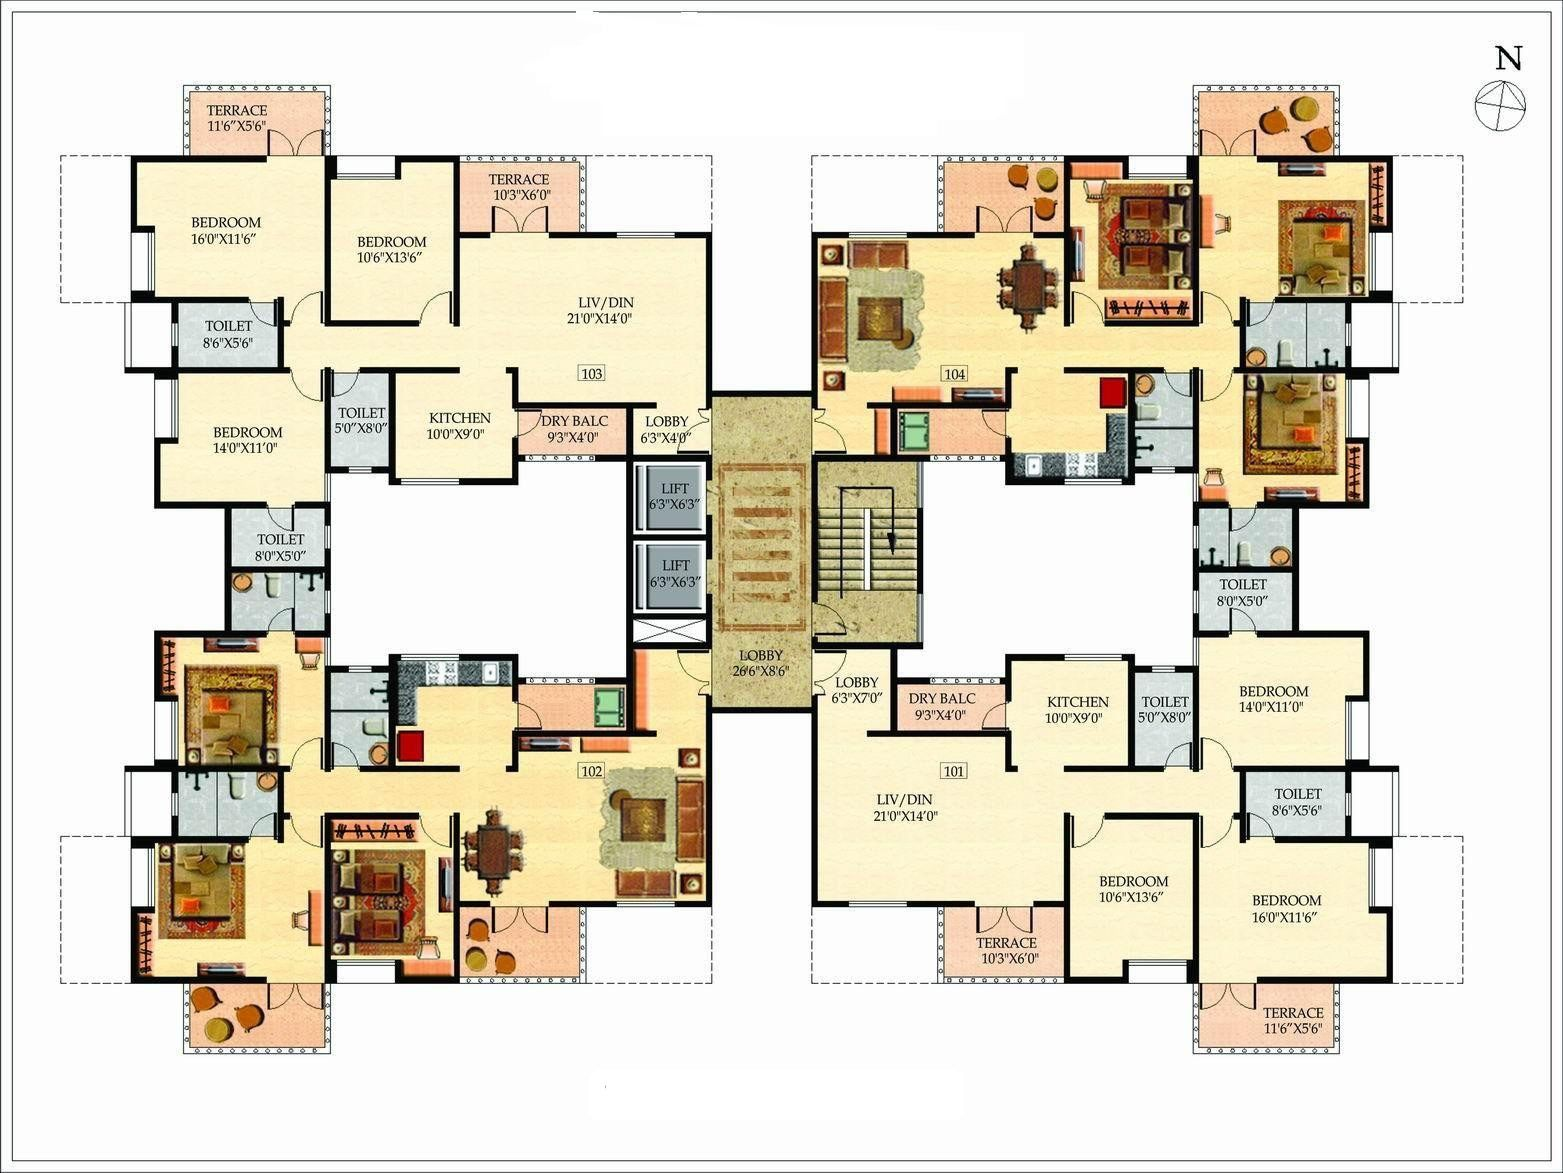 6 bedroom mansion floor plans design ideas 2017 2018 pinterest mansion bedrooms and - Best bedroom plan ...